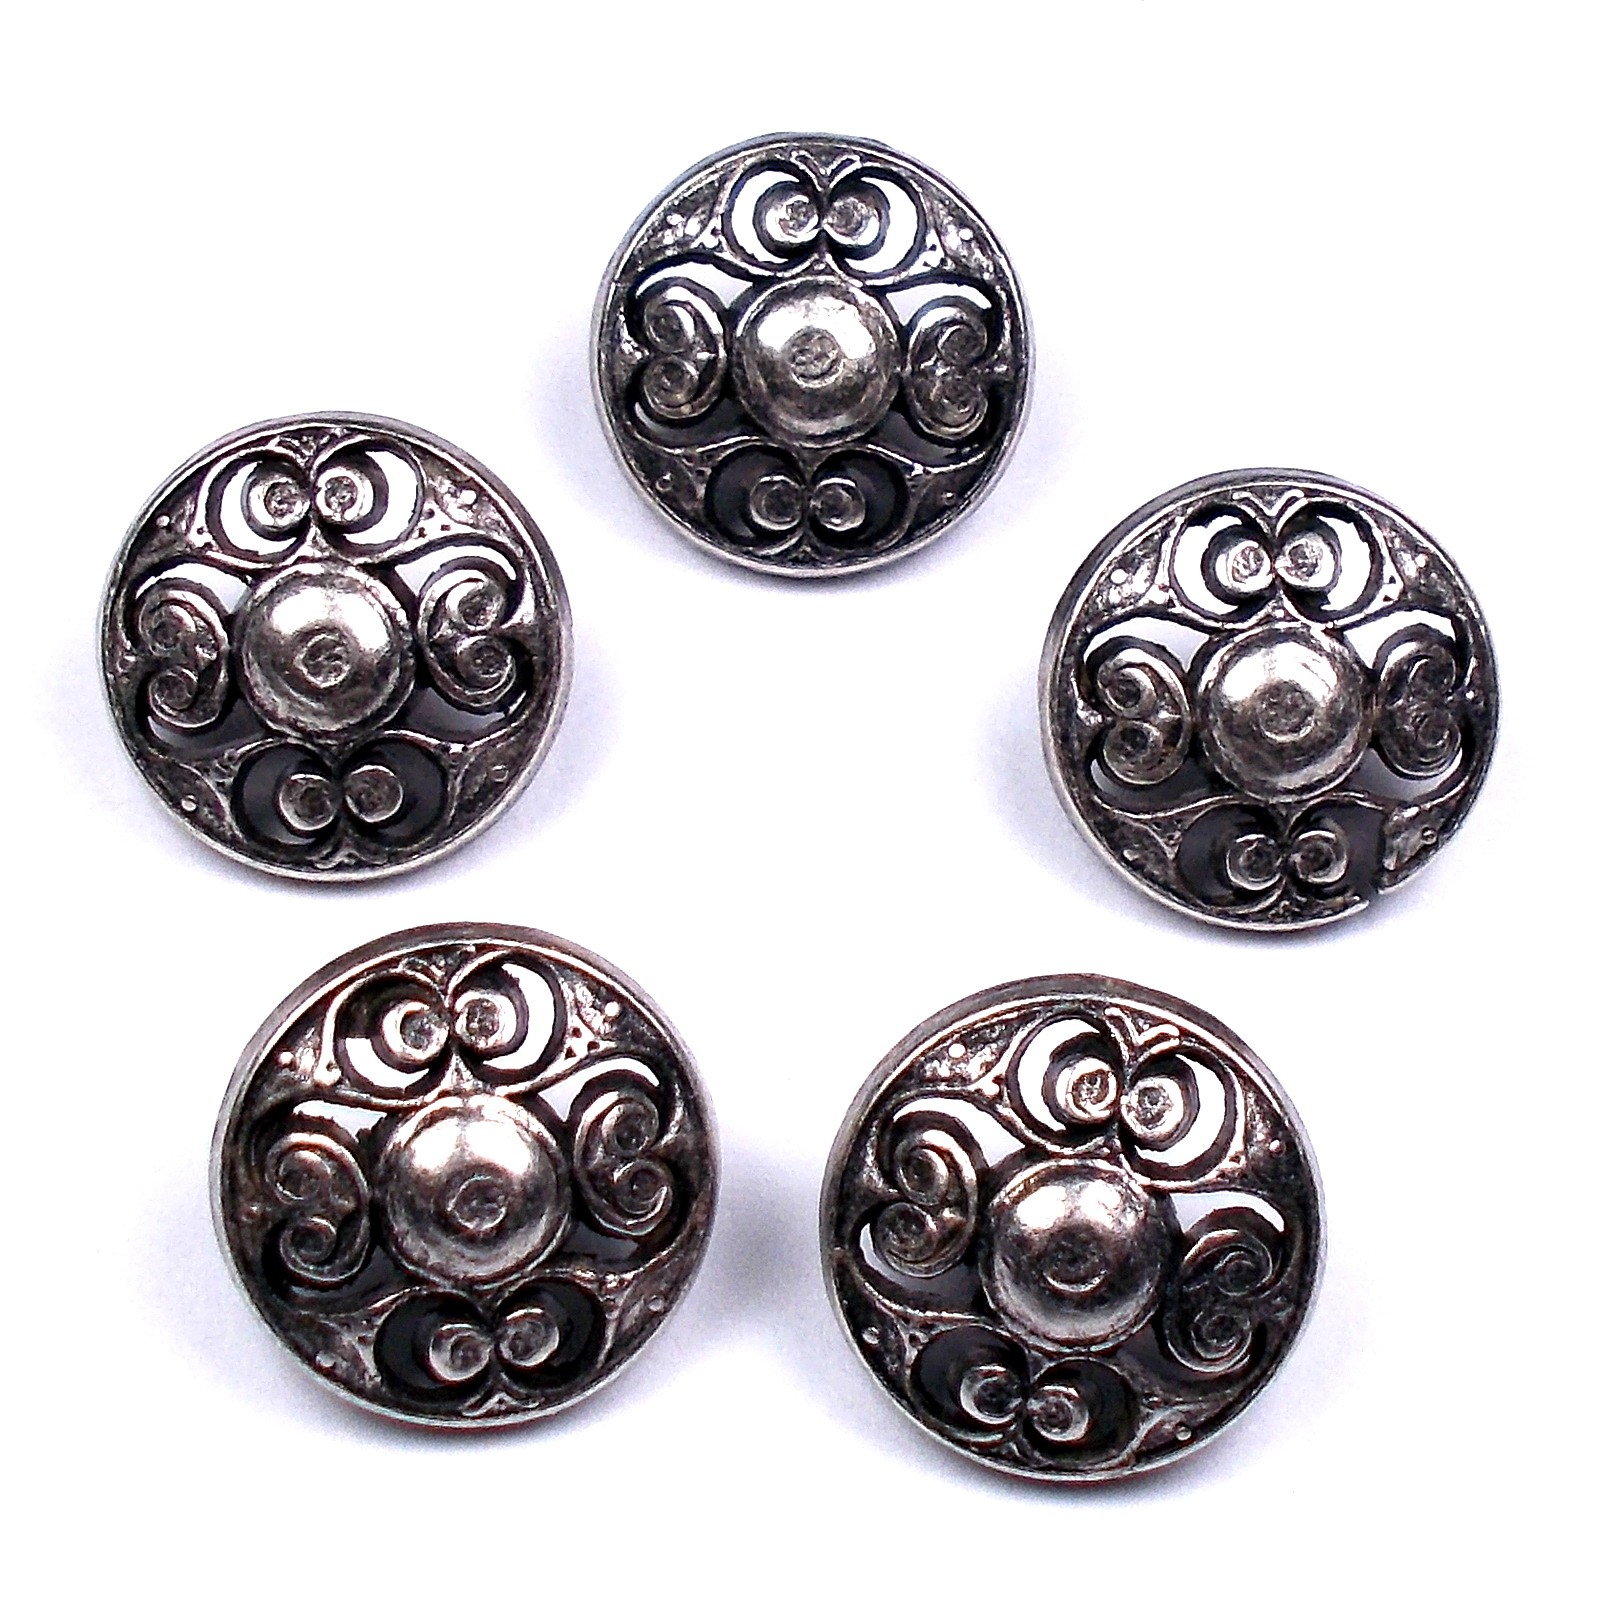 Vintage Style Metal Filigree Buttons 22mm Silver Pack of 5